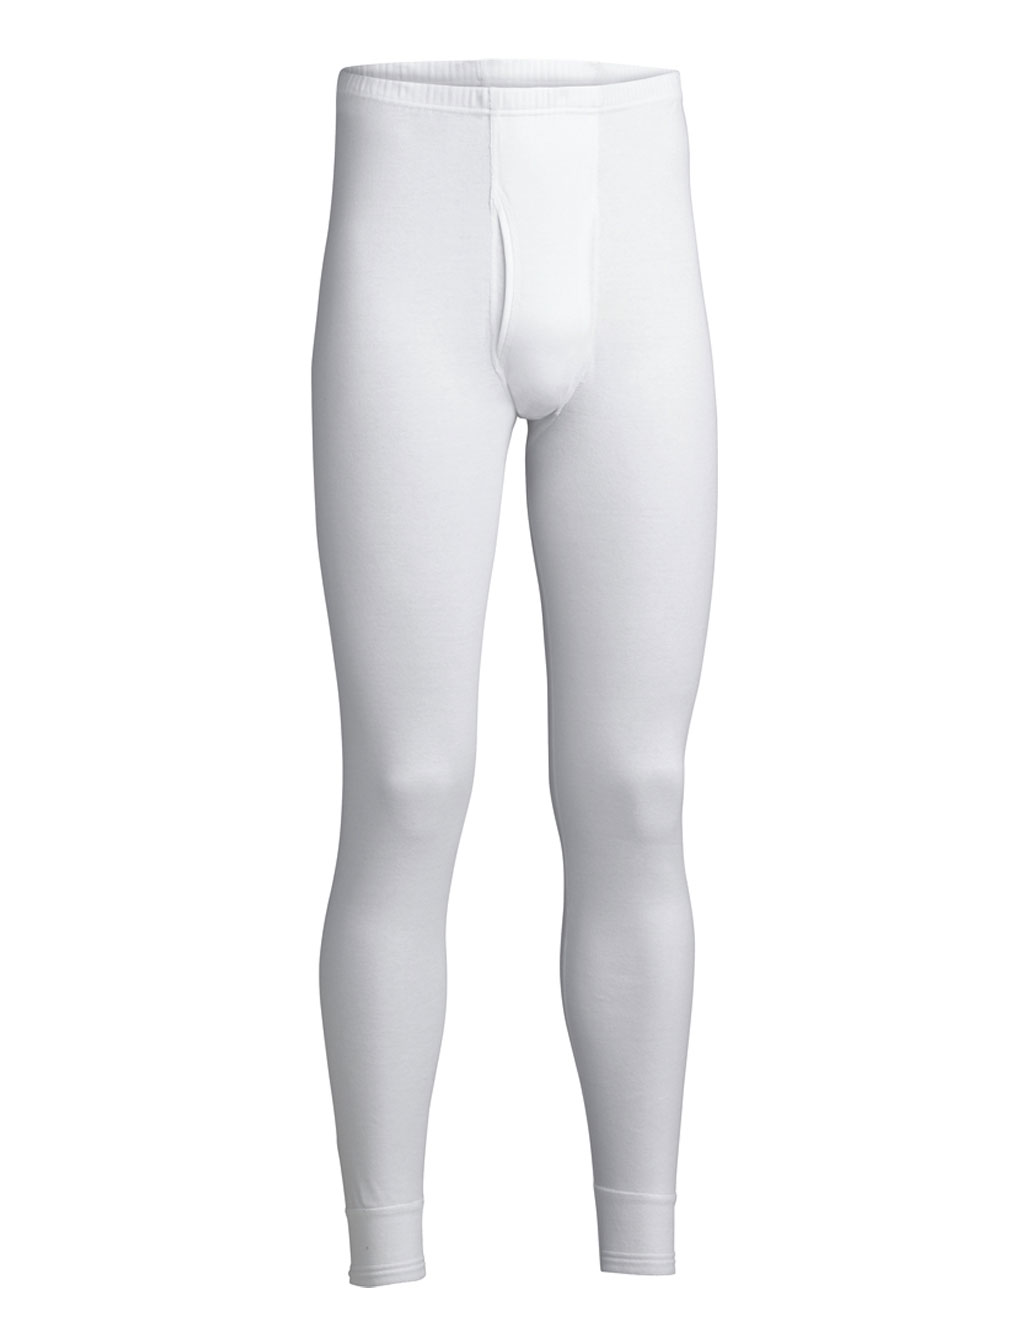 resterods-classic-long-johns-white-01